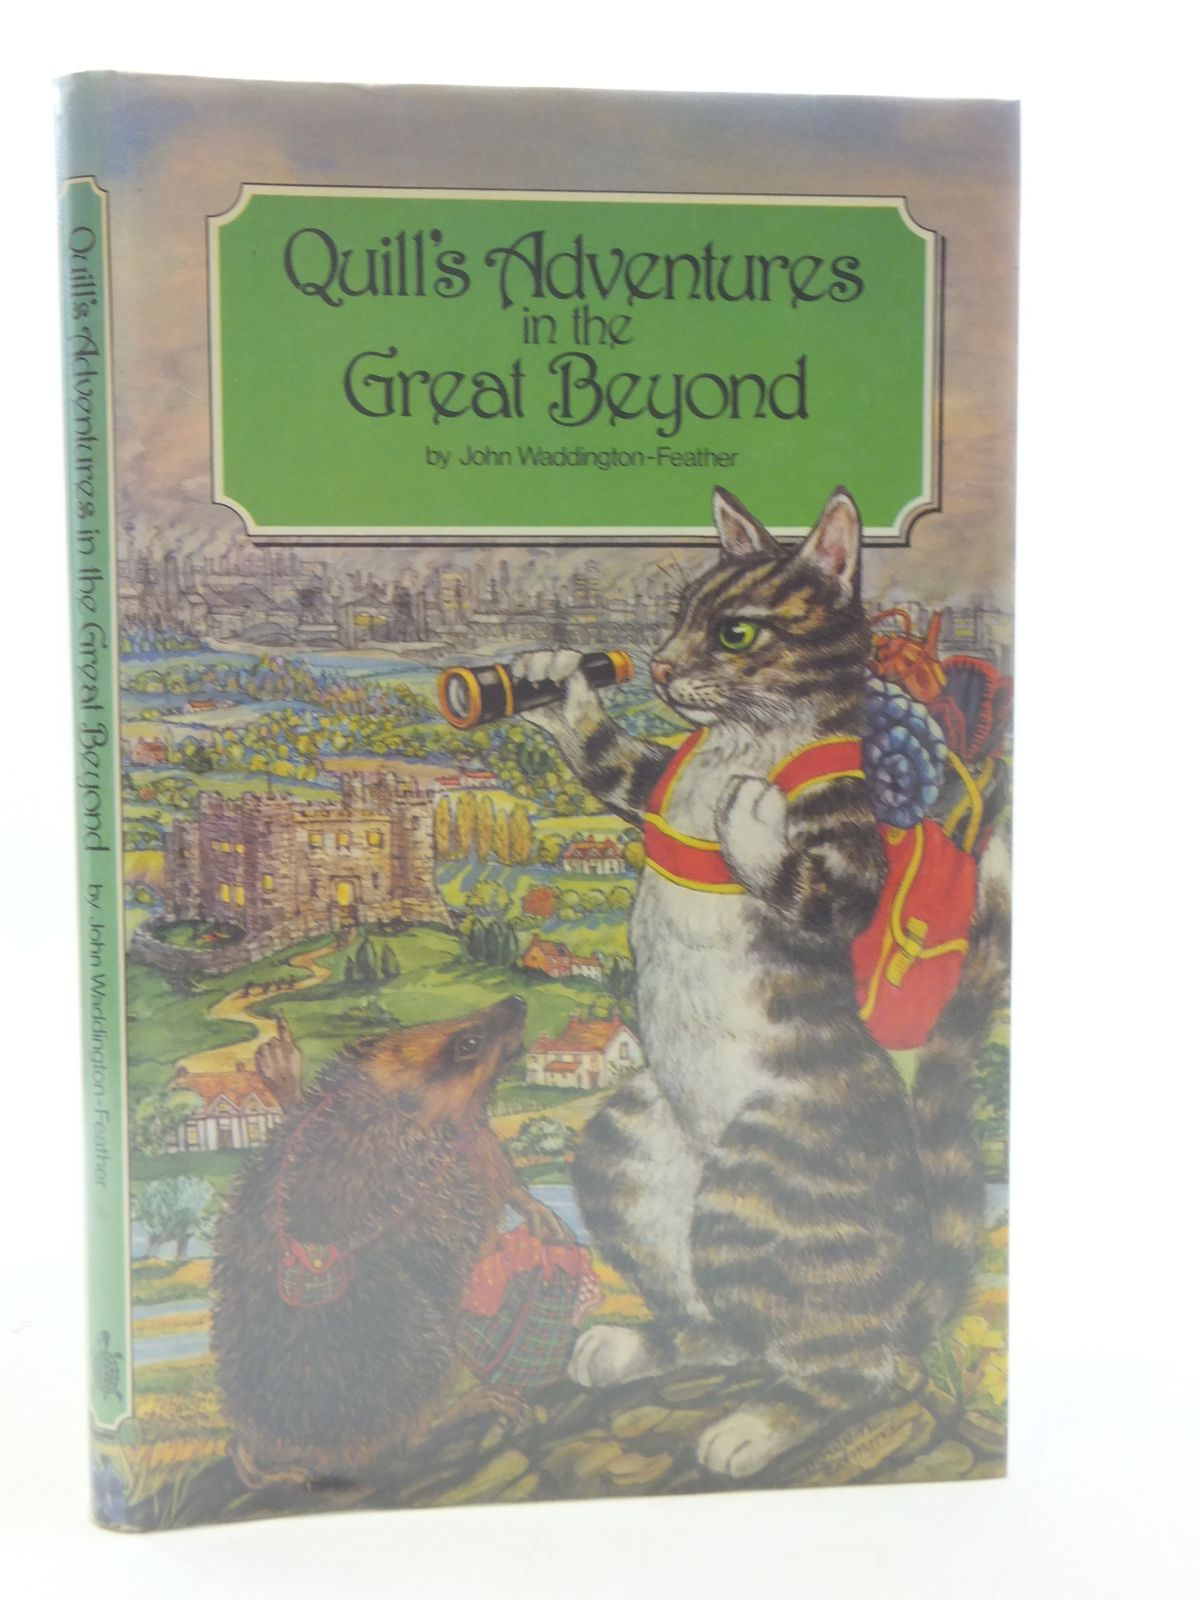 Photo of QUILL'S ADVENTURES IN THE GREAT BEYOND written by Waddington-Feather, John published by Hambleside Publishers (STOCK CODE: 1207793)  for sale by Stella & Rose's Books